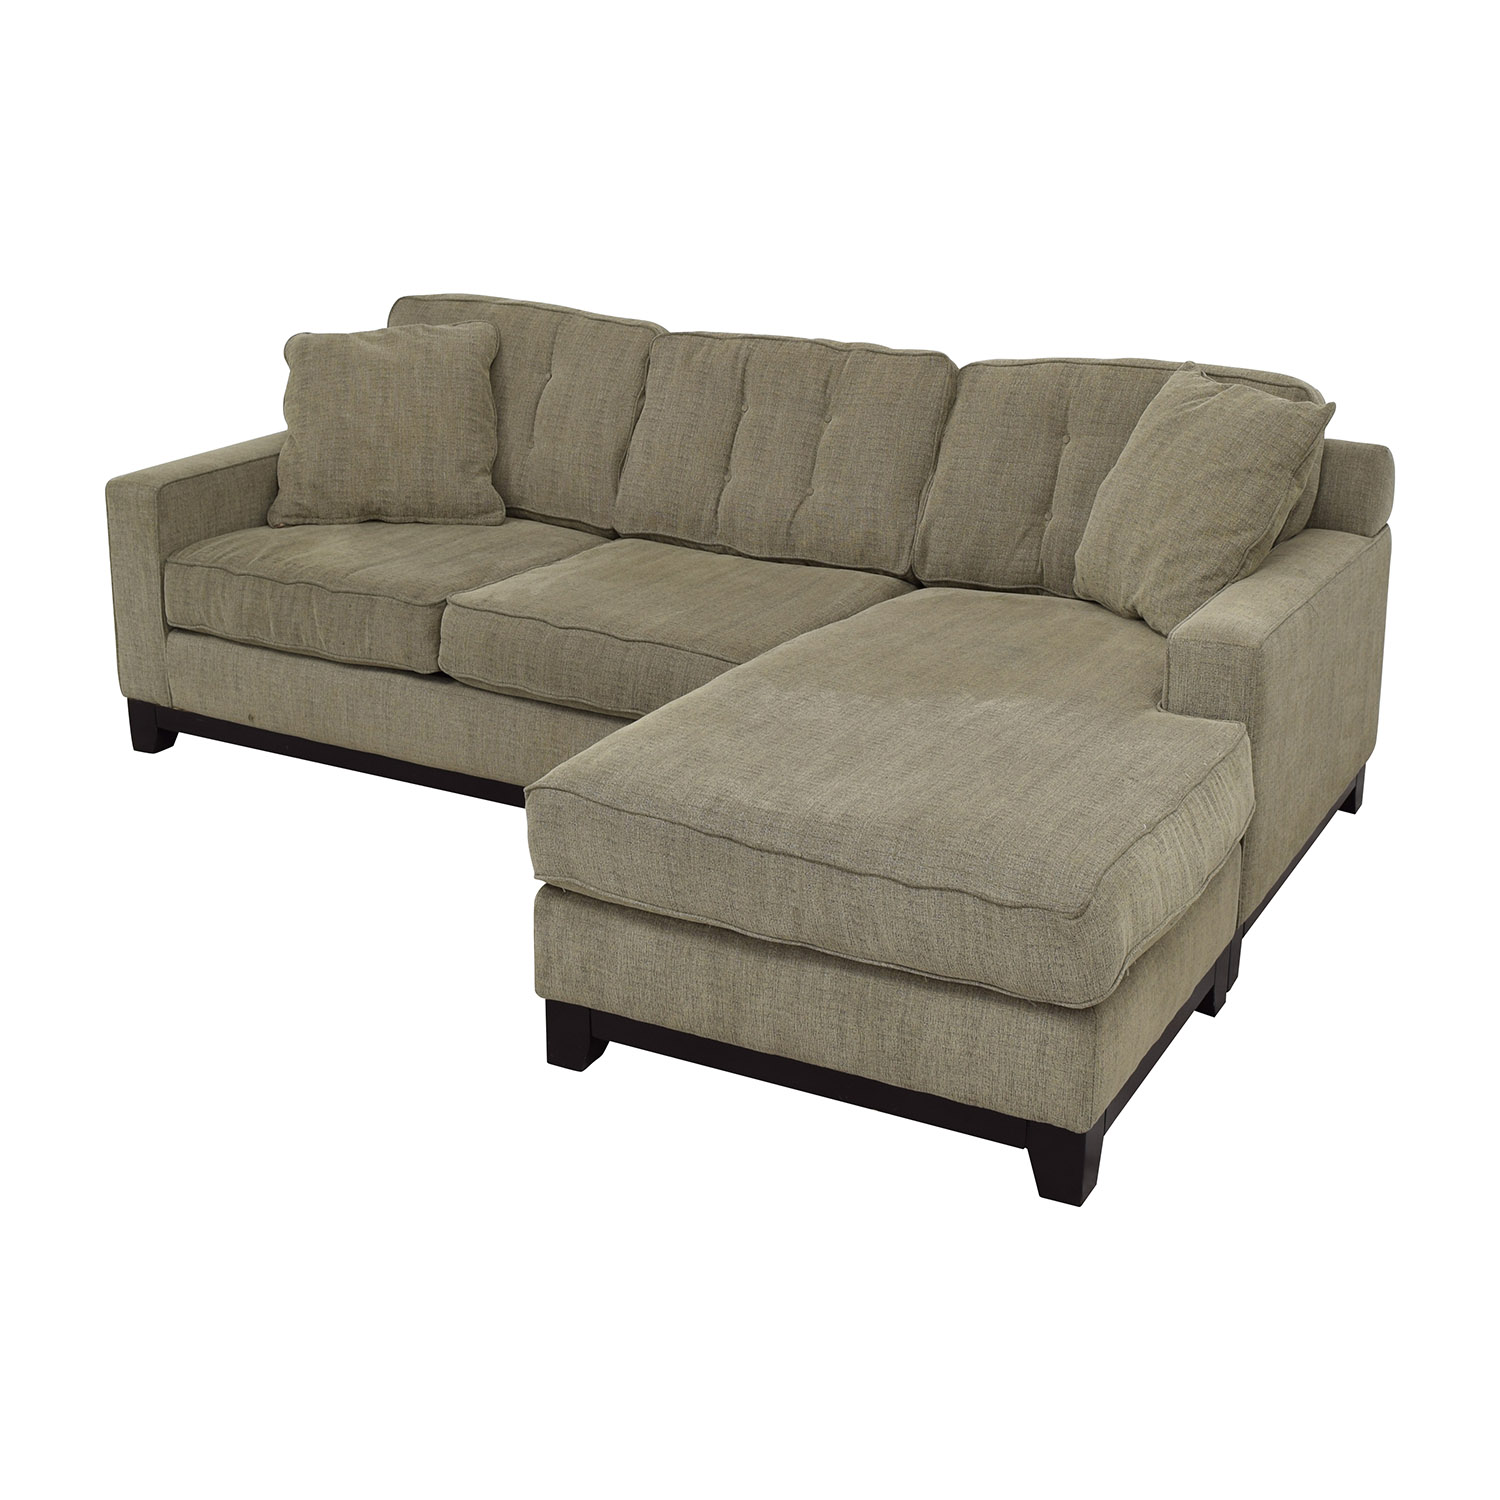 57 off grey l shaped sectional sofas - L Shaped Sectional